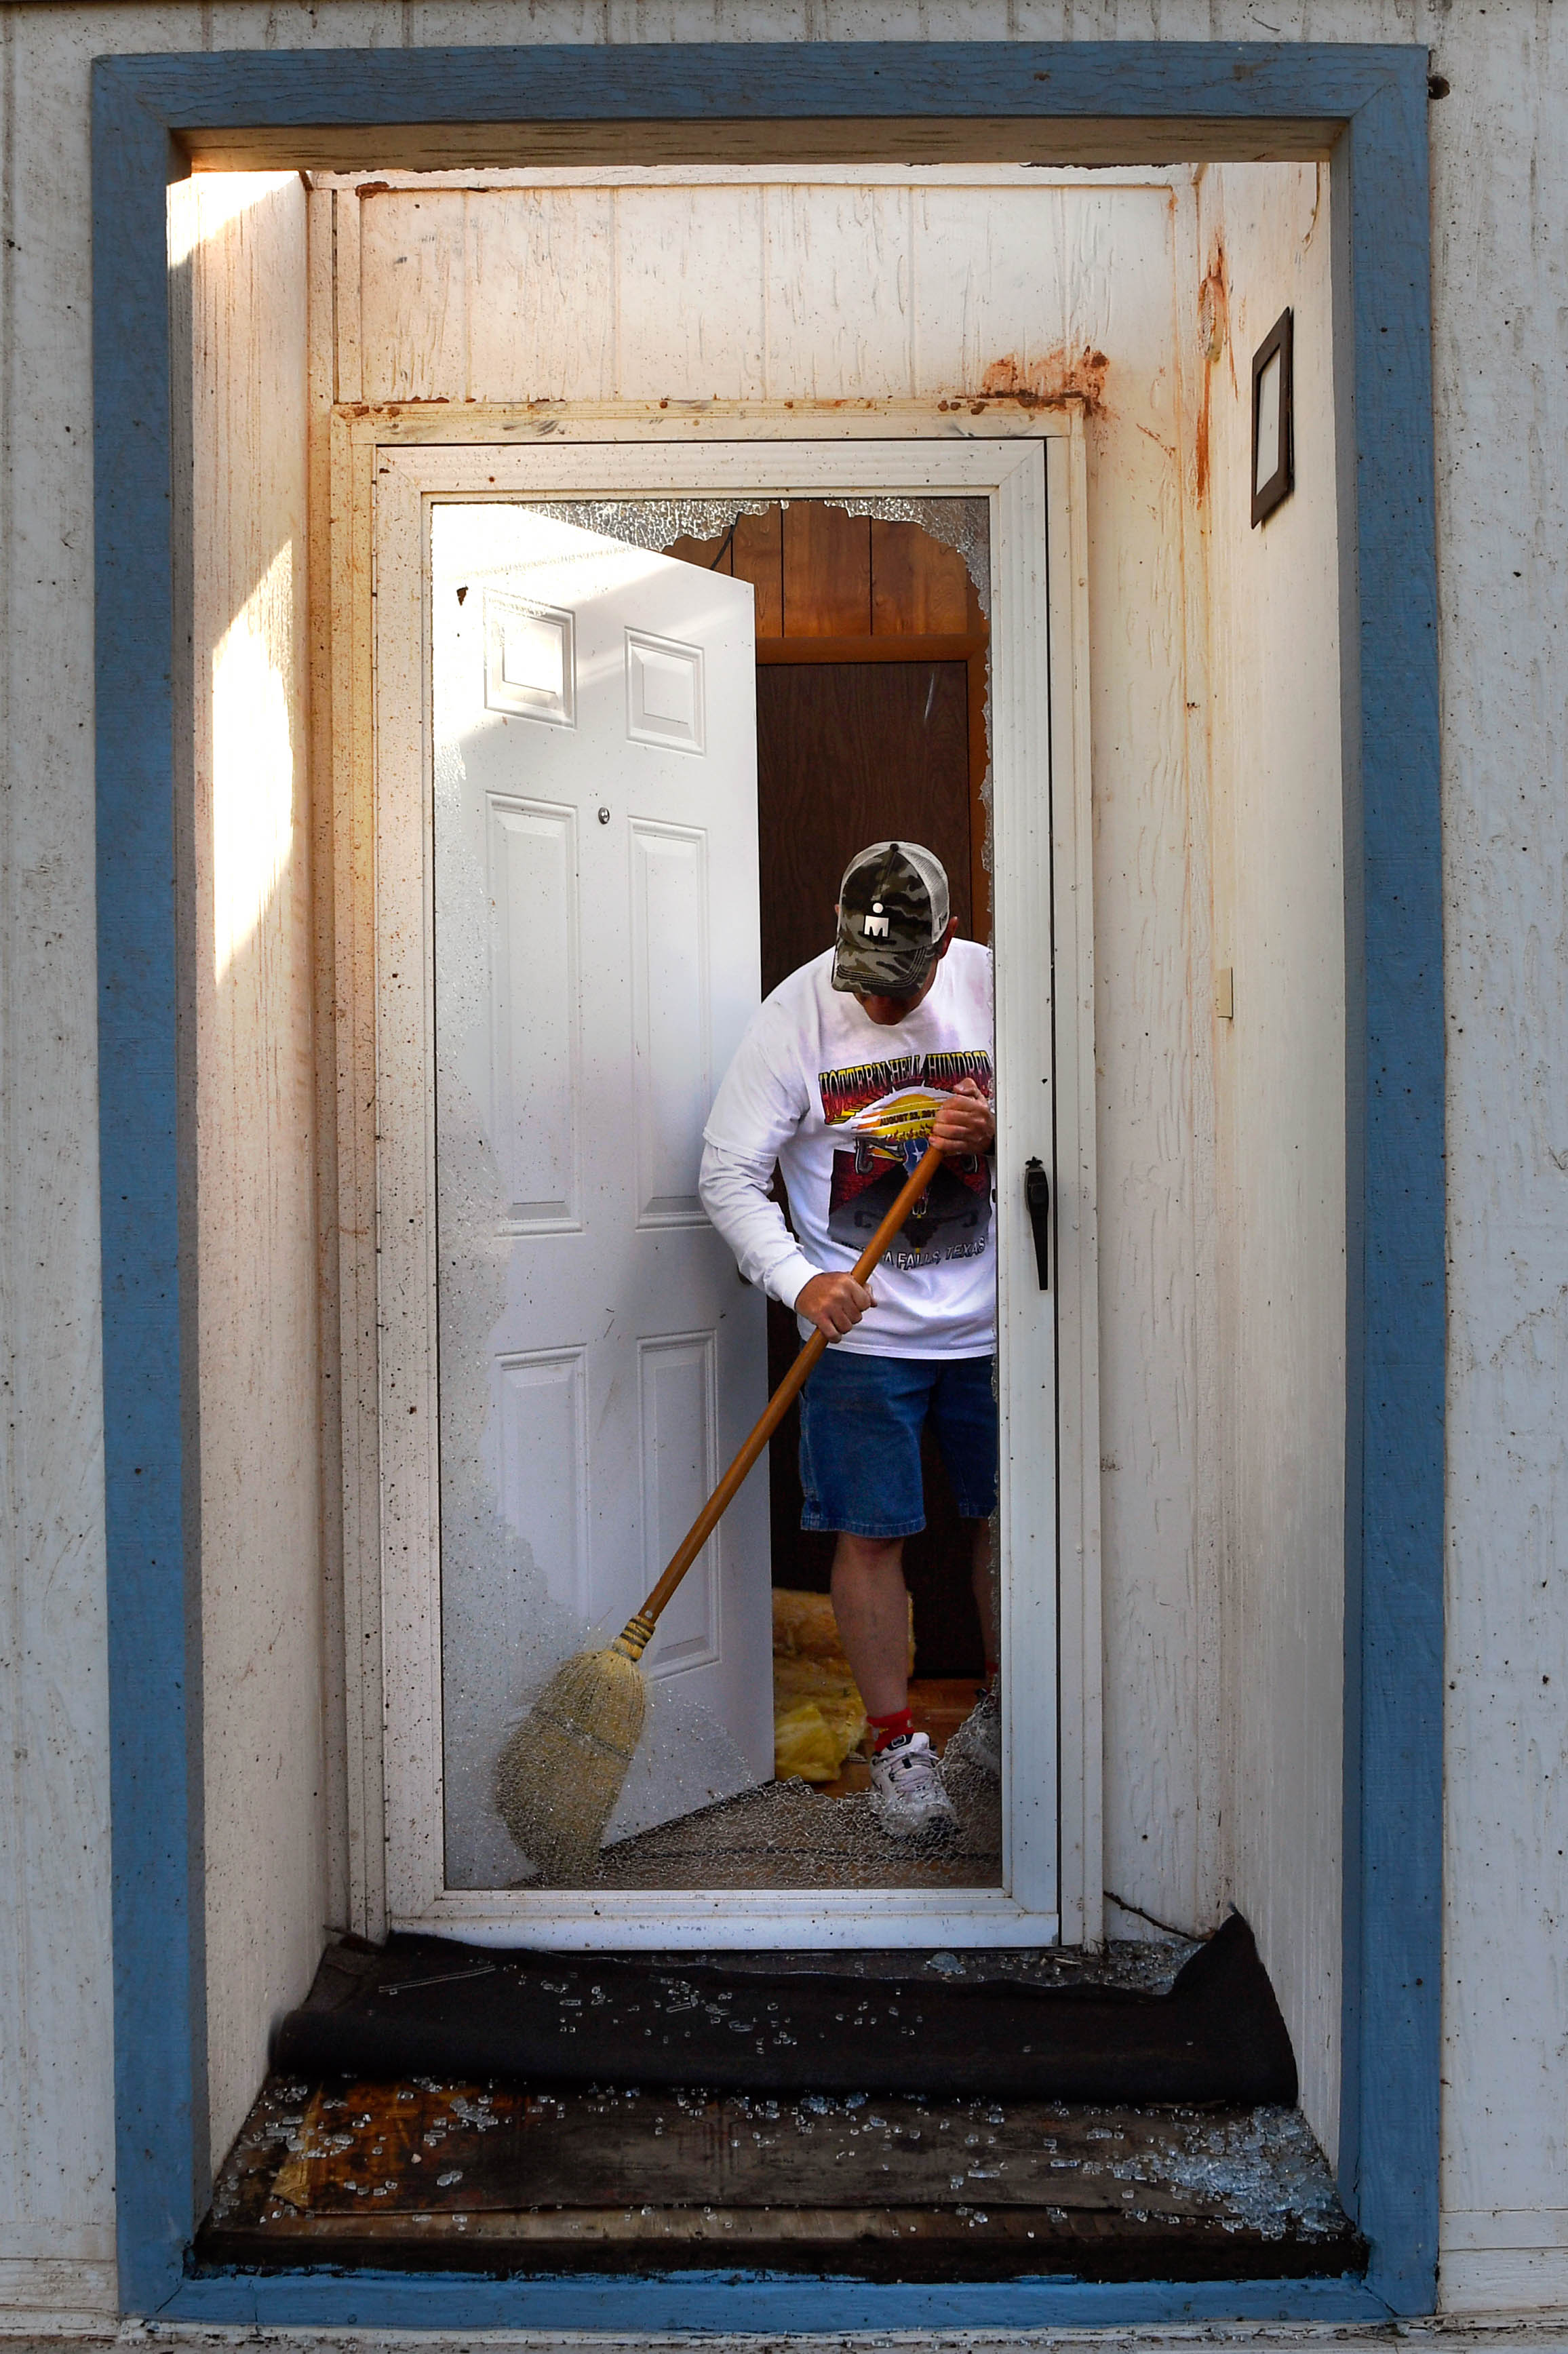 """William """"J.R."""" Brock sweeps glass from his shattered front doorway Thursday morning March 19, 2020. The Tye resident was awakened about 1:30 a.m. by the sound of the Dyess Air Force Base sirens as a tornado swept over his neighborhood. Brock was able to get his wife Kristi, her mother, and their two dogs into a storm shelter before the roof was taken off their home."""